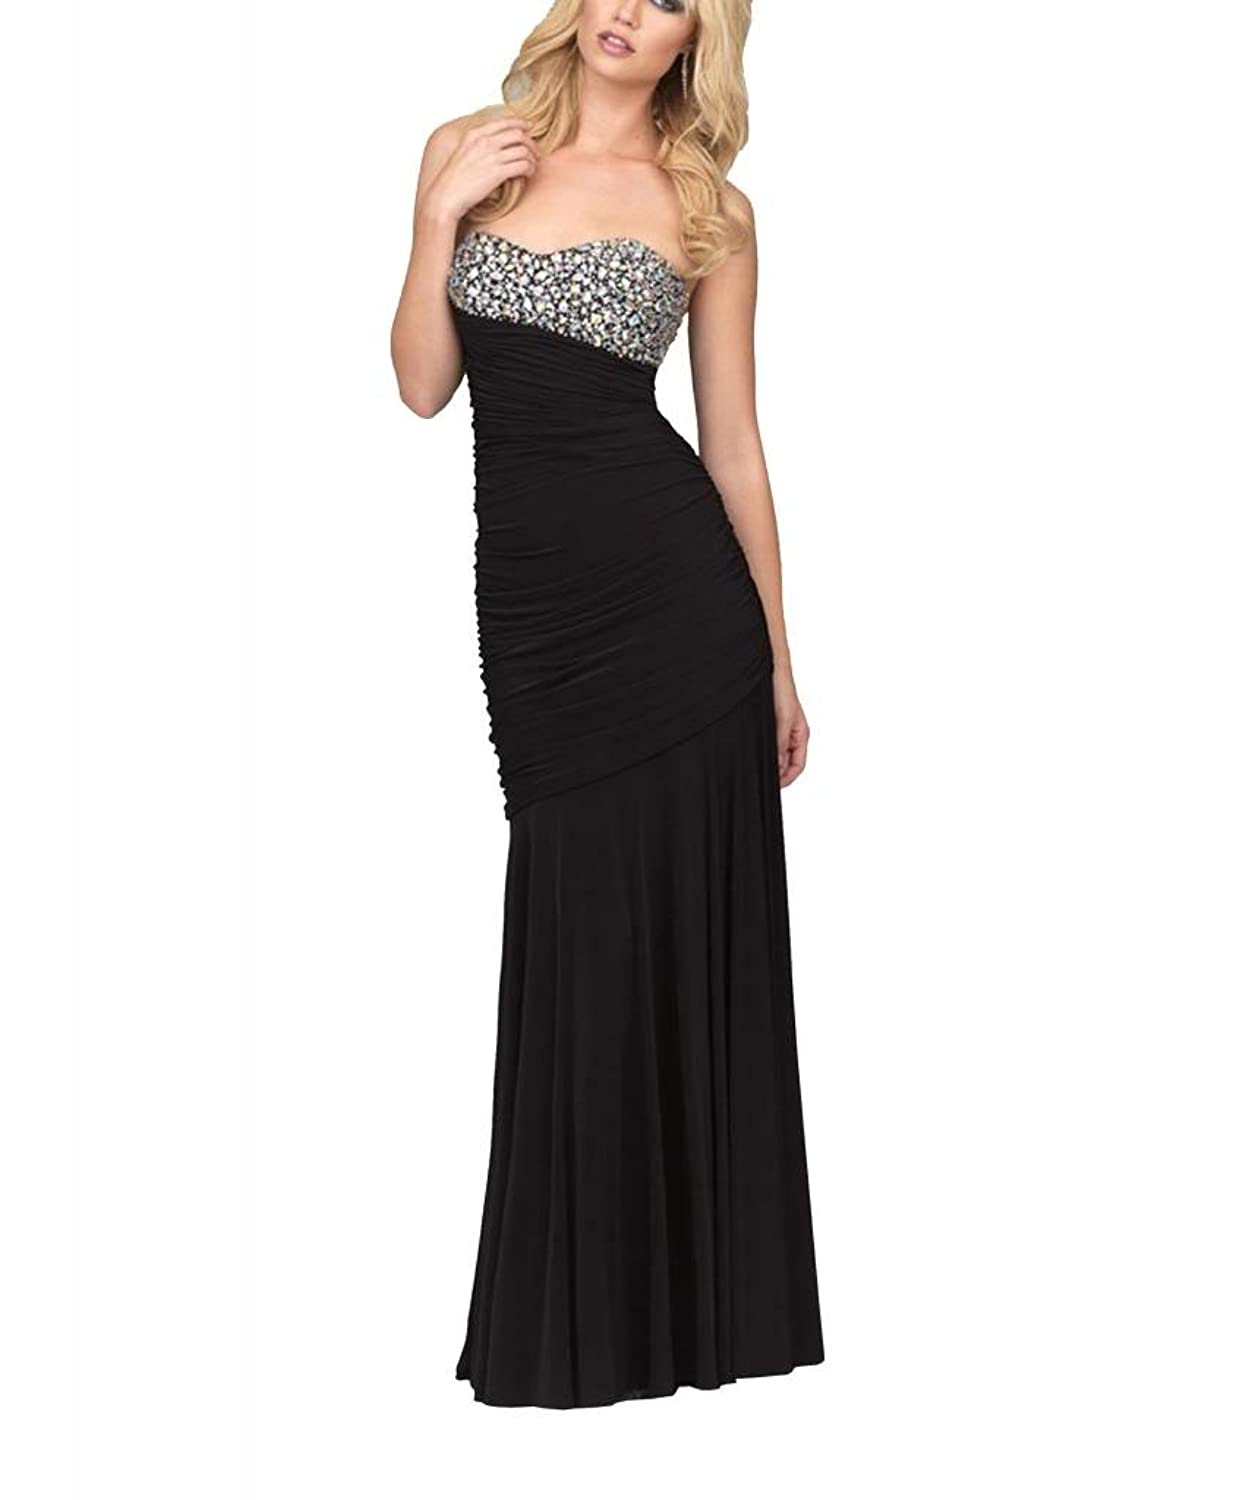 GEORGE BRIDE Trumpet/ Mermaid Sweetheart Floor-Length Black Chiffon Evening Dress